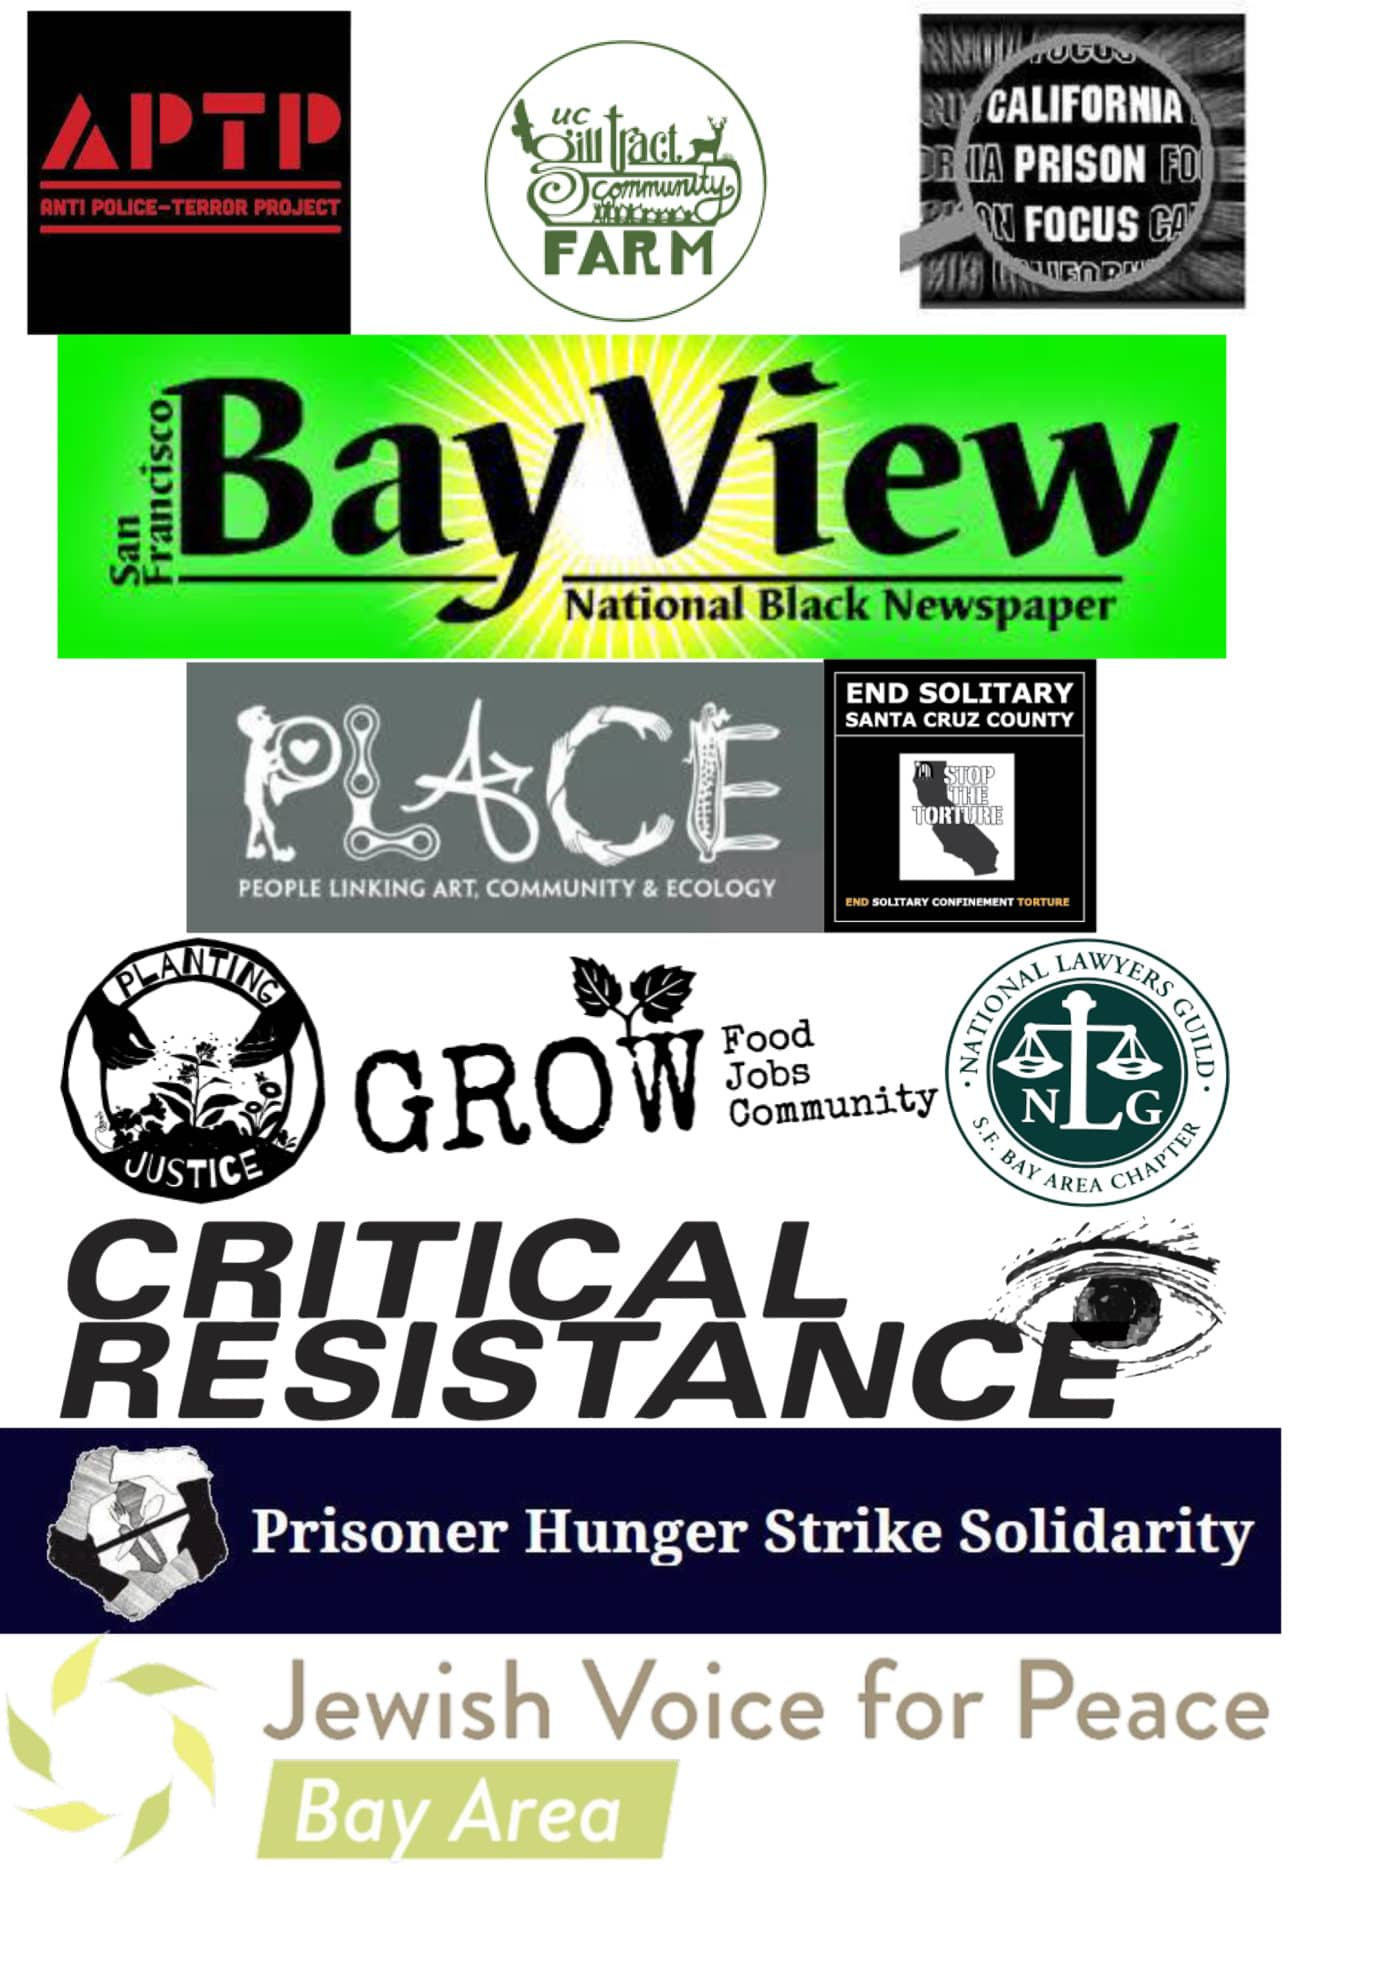 Statement-on-COVID-19-militarism-and-community-safety-banners-1400x1985, Statement on COVID-19, militarism and community safety, Local News & Views